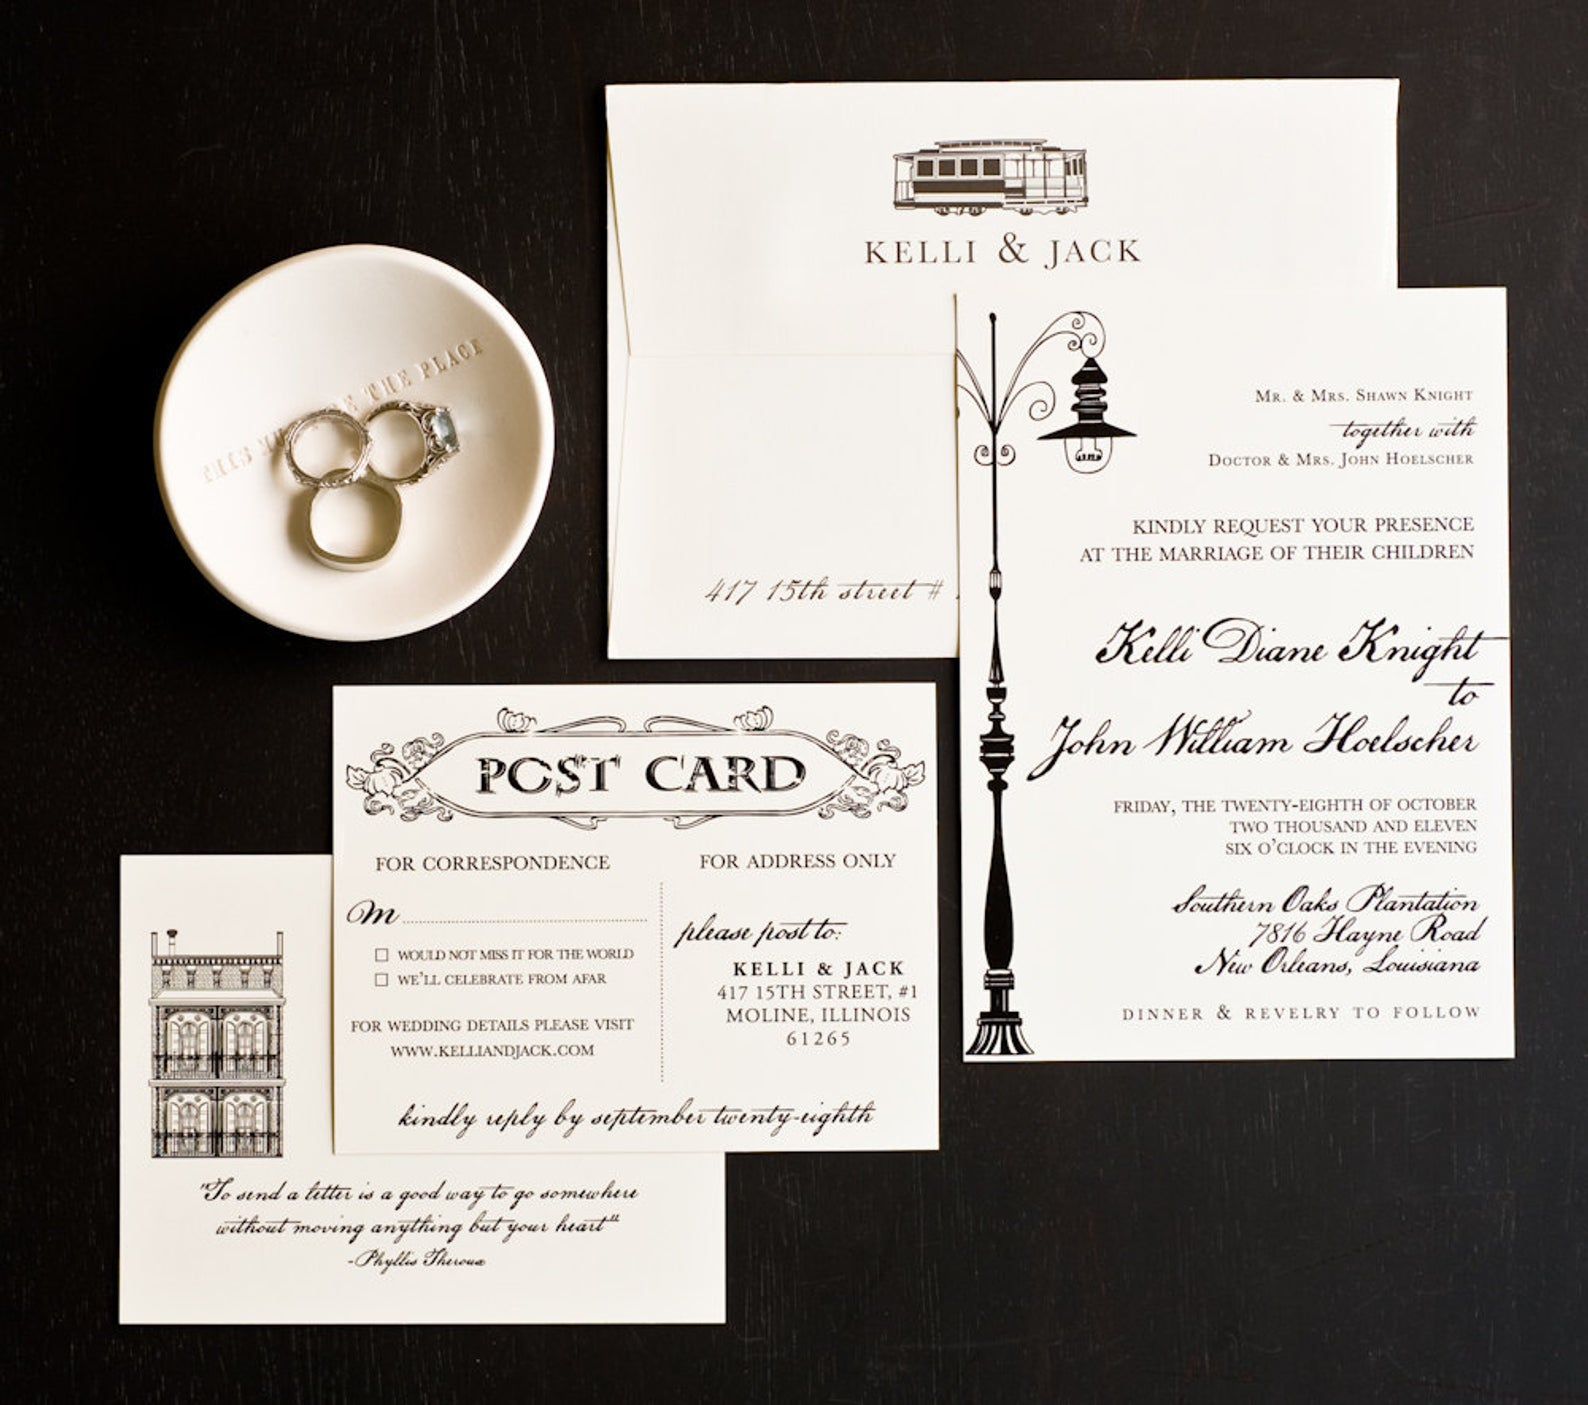 Vintage New Orleans Love Letter Wedding Invitation Collection from Seahorse Bend Press